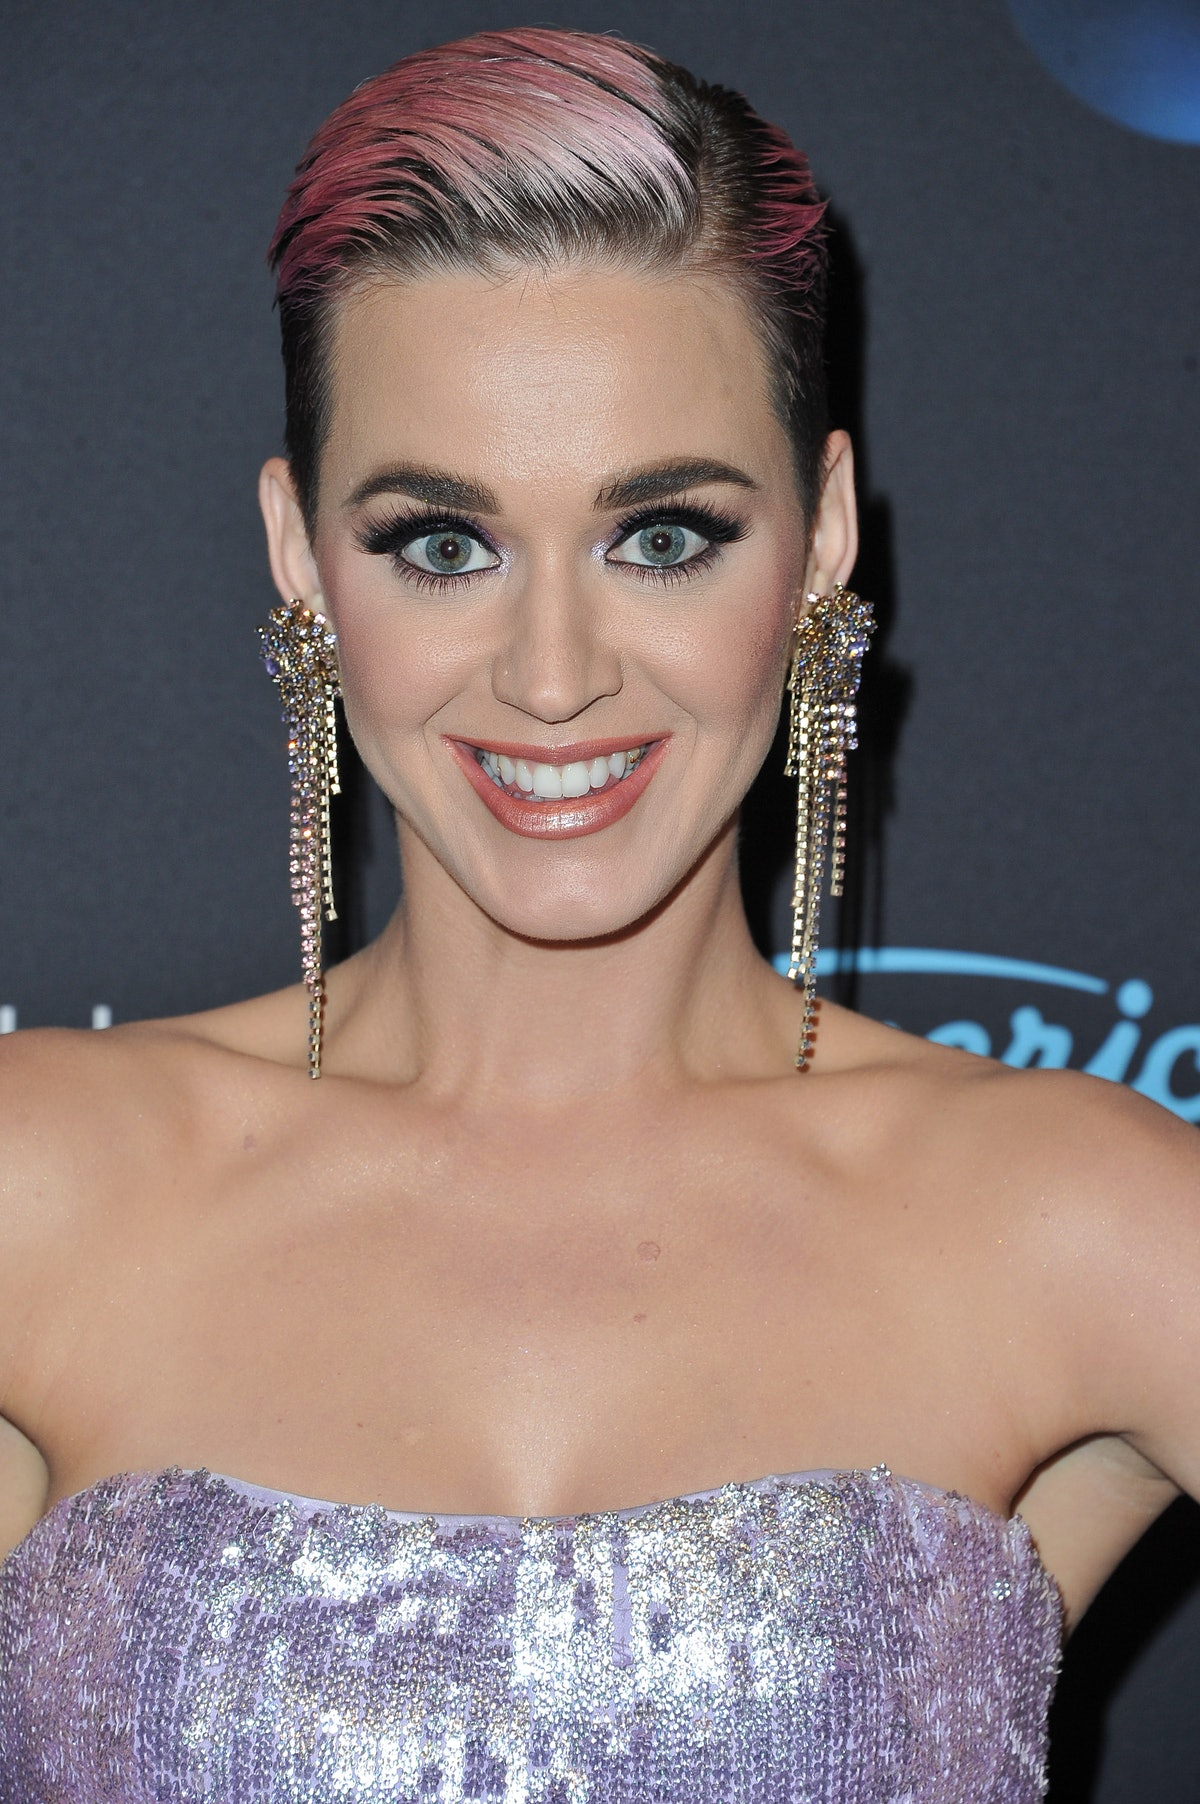 Katy Perry Got A New Tattoo To Celebrate Her Tour's End & It's SUPER Meaningful